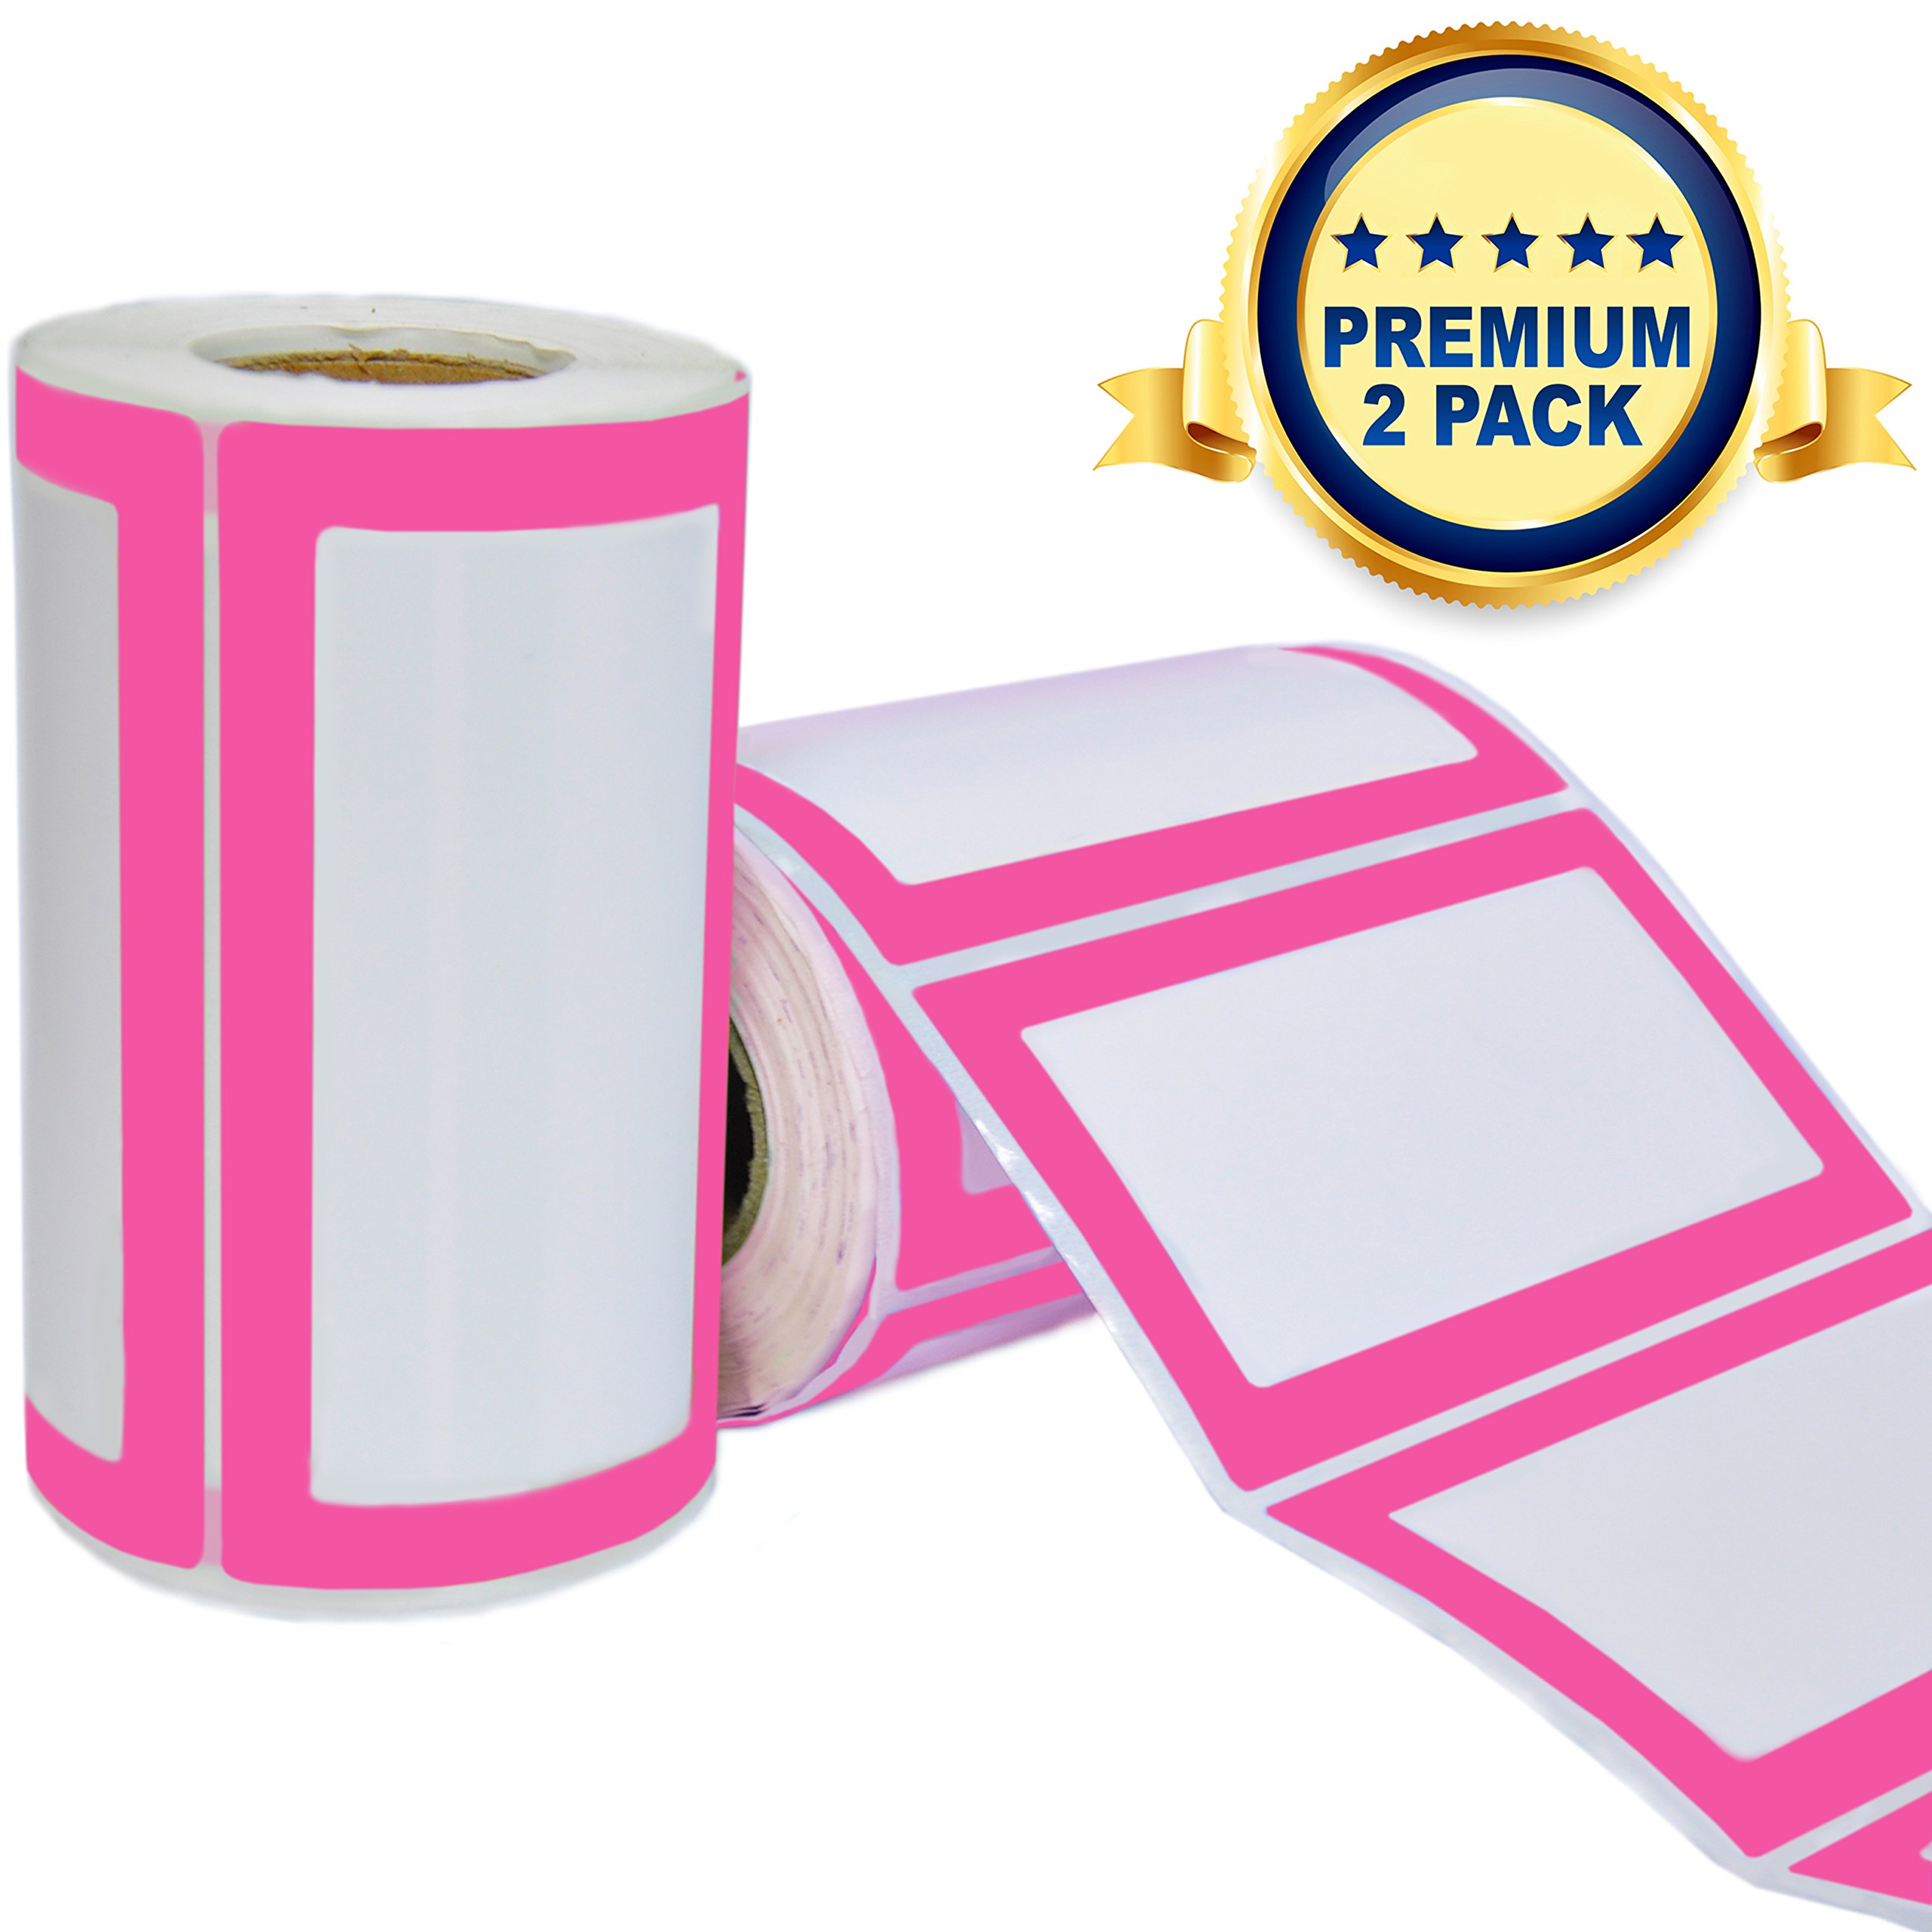 Colorful Plain Name Tag Labels - 2 Rolls 500 Stickers in Total - 3.5 x 2 inches - Nametags for Jars, Bottles, Food Containers, Folders, Birthday Parties and Kids Clothes (Pink/Pink 2 Pack)